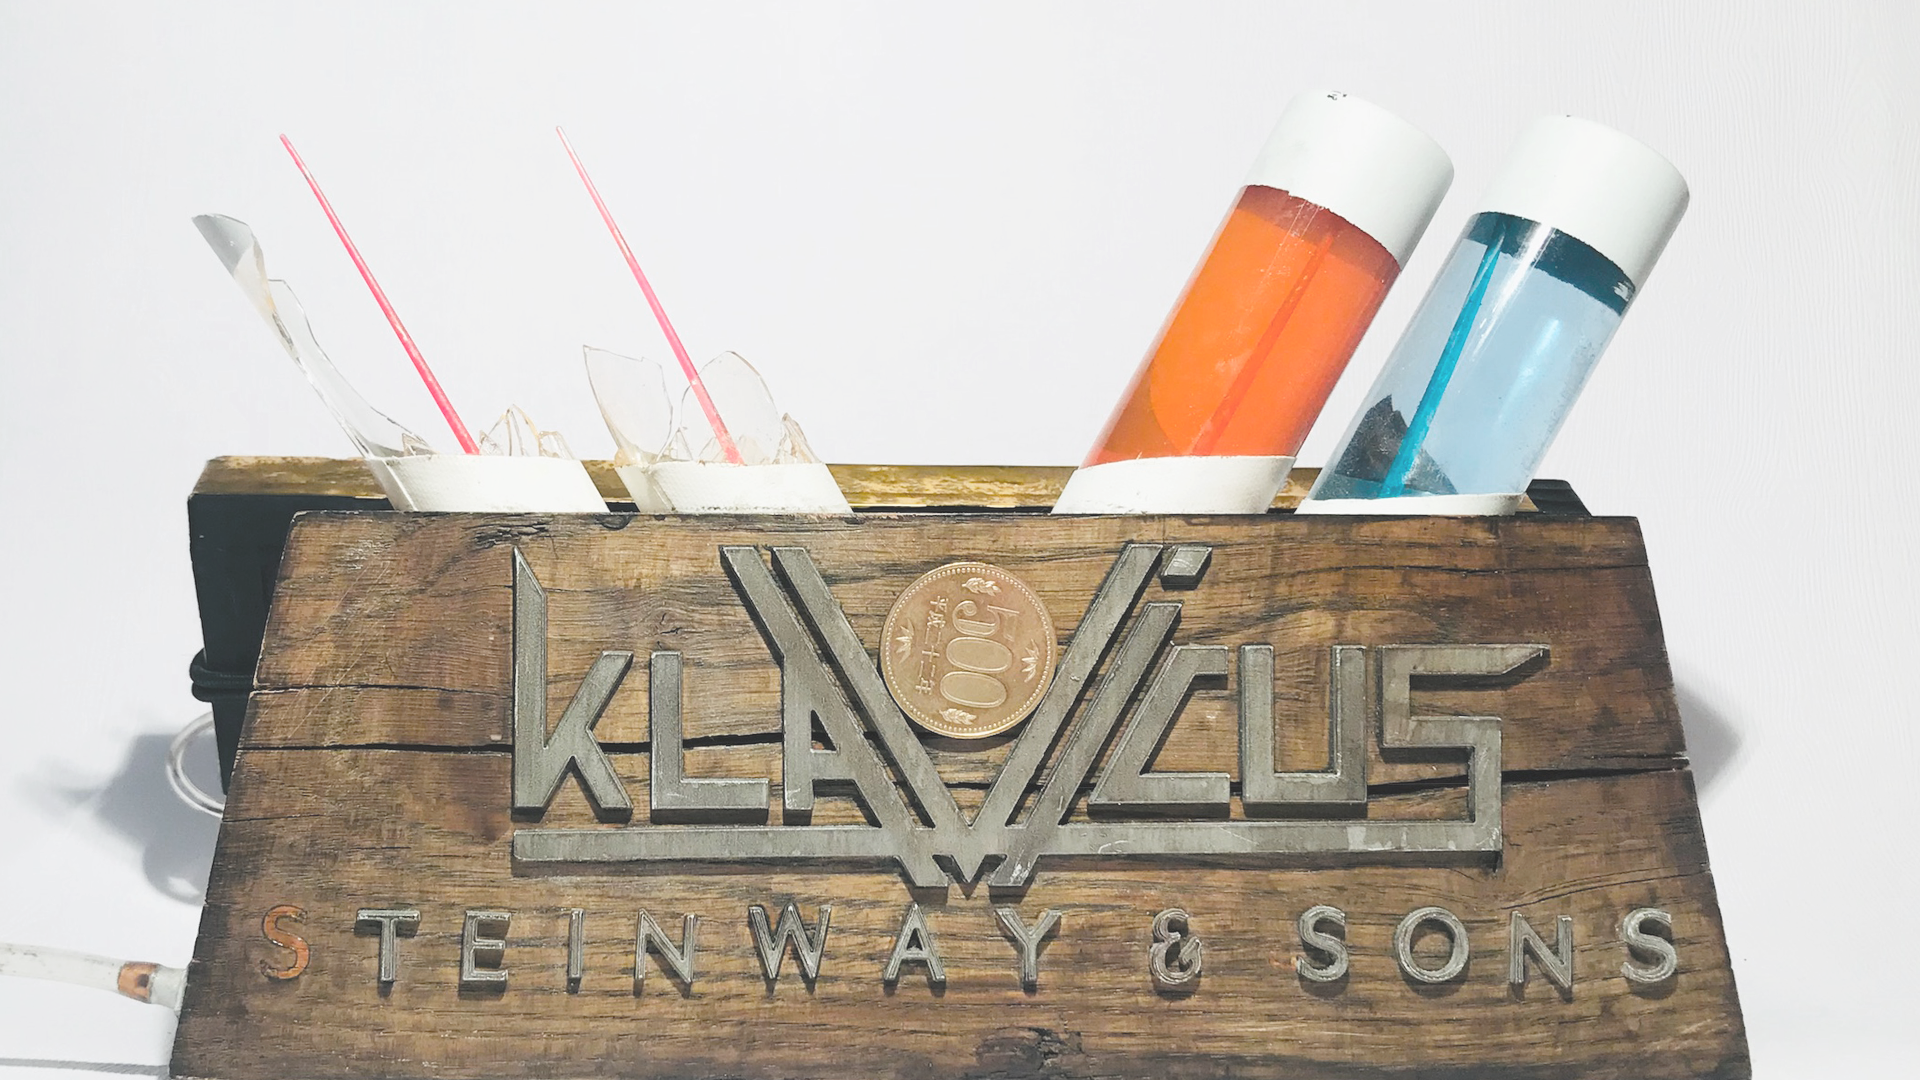 KLAVICUS, by Steinway & Sons